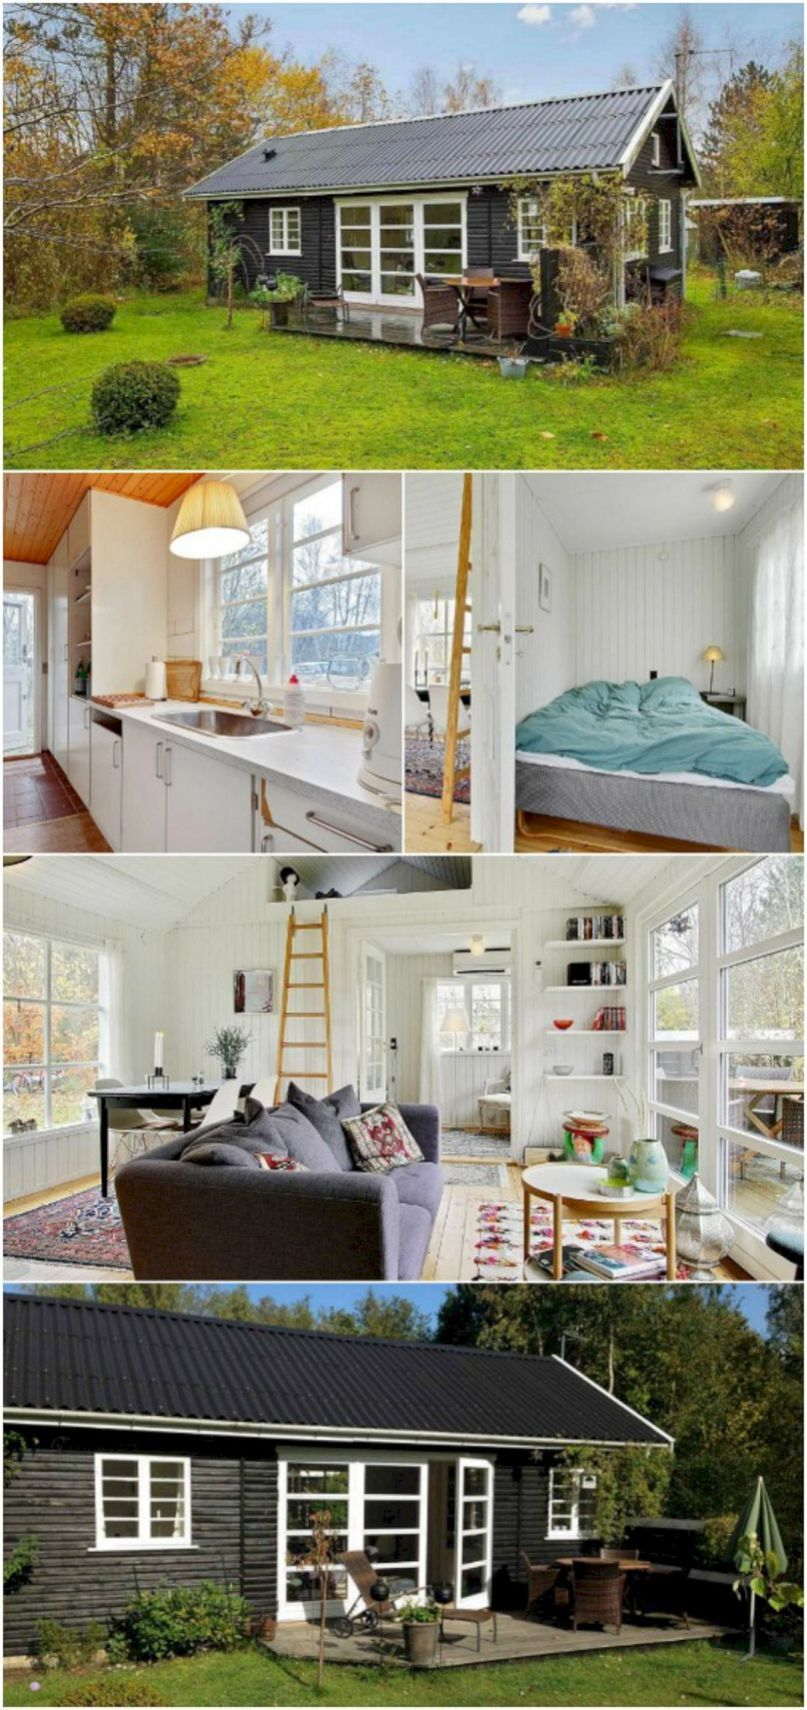 marvelous tiny houses design that maximize style and function